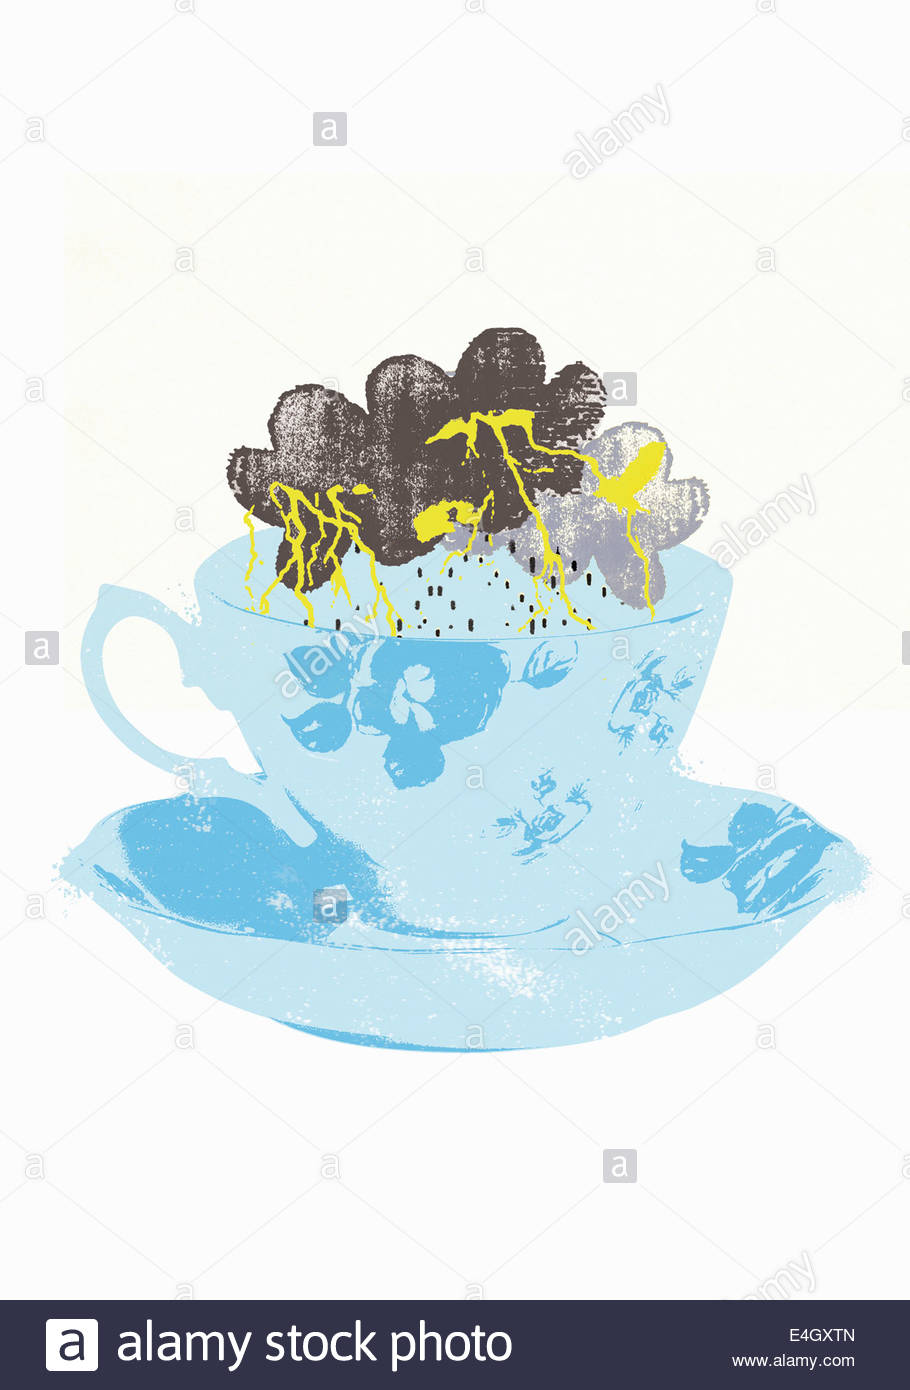 Storm in a teacup - Stock Image